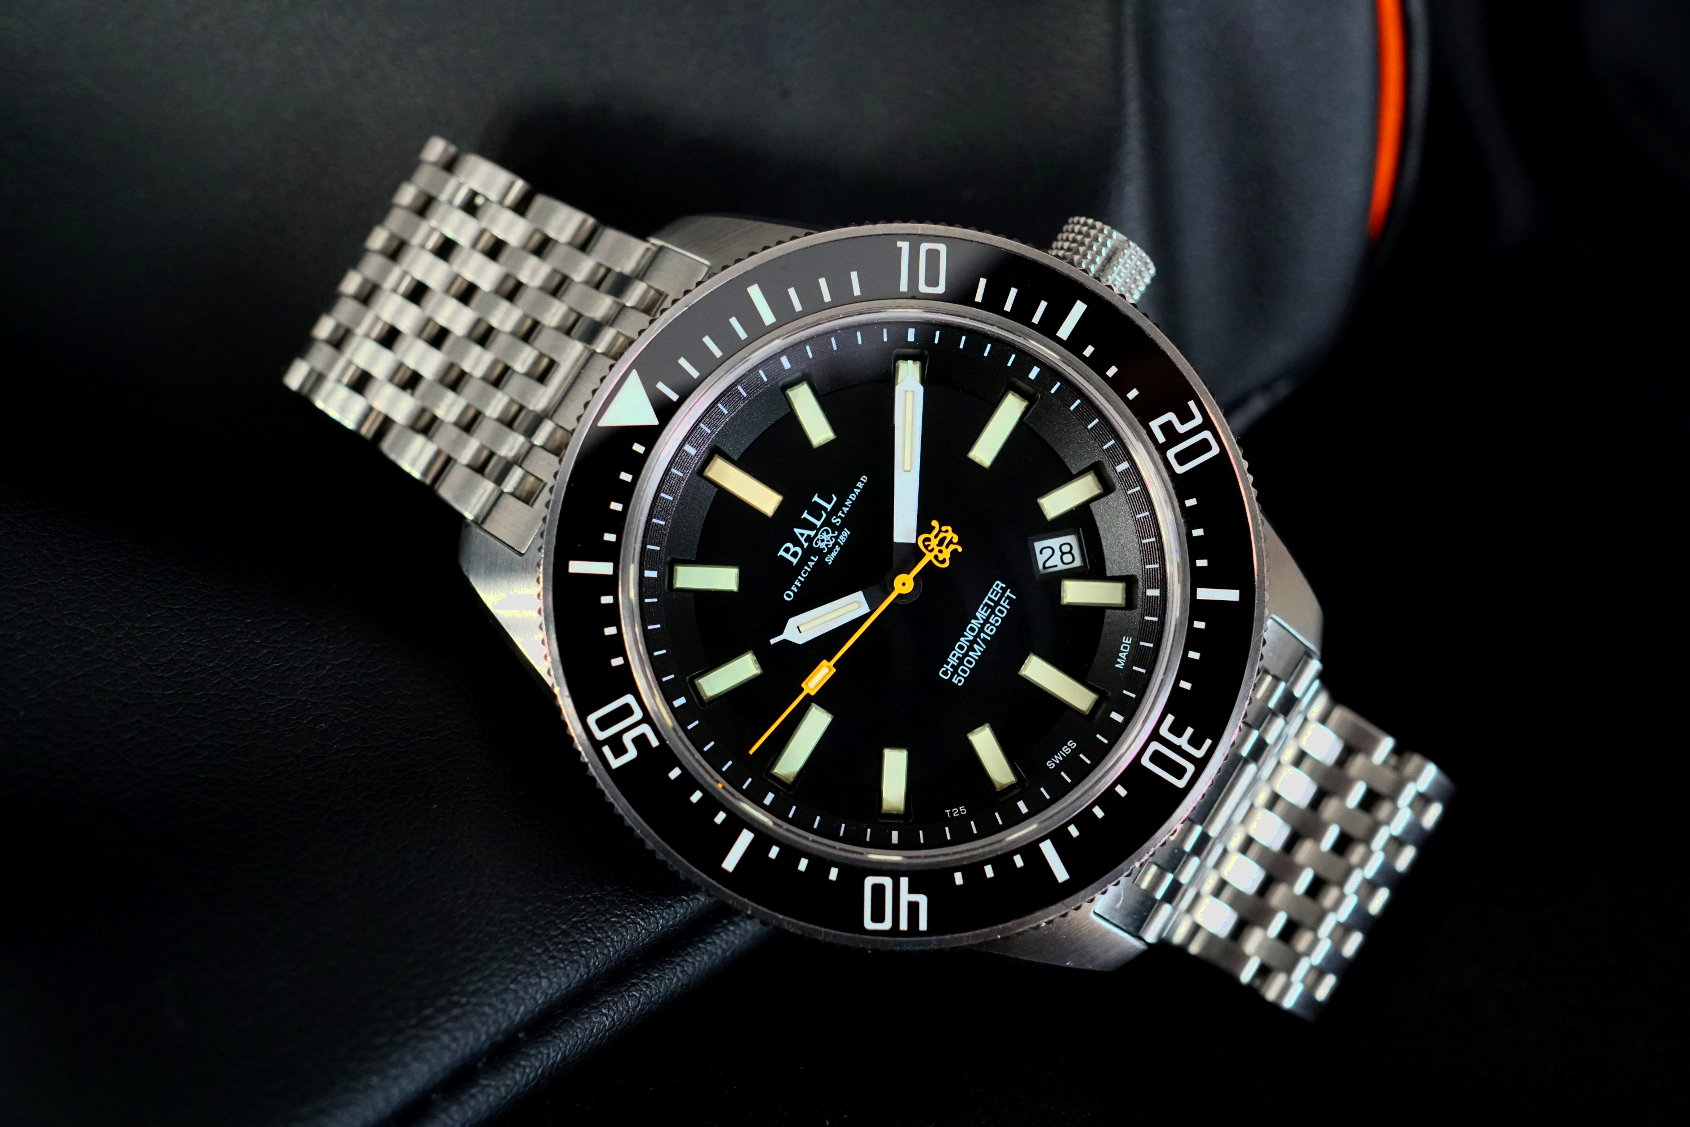 Ball Engineer Master II Skindiver II